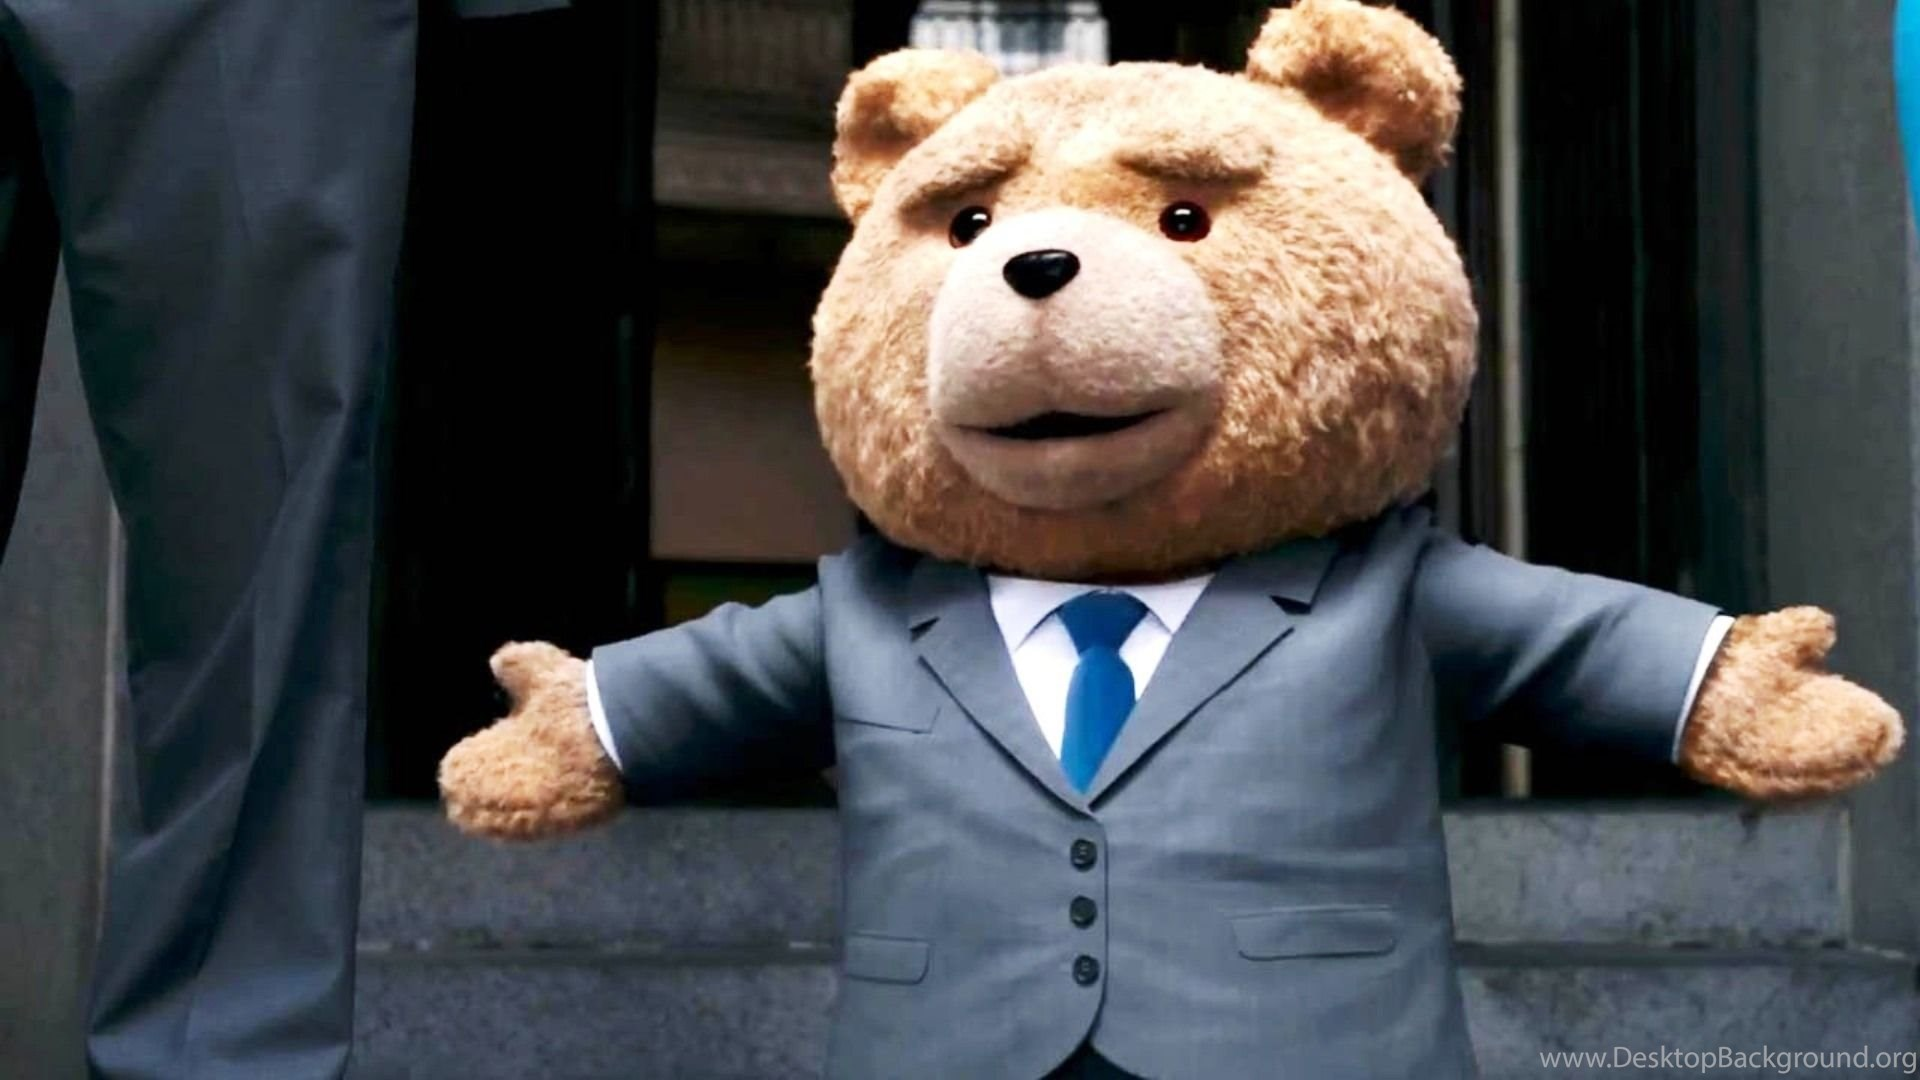 ted 2 movie comedy hd wallpaper desktop background